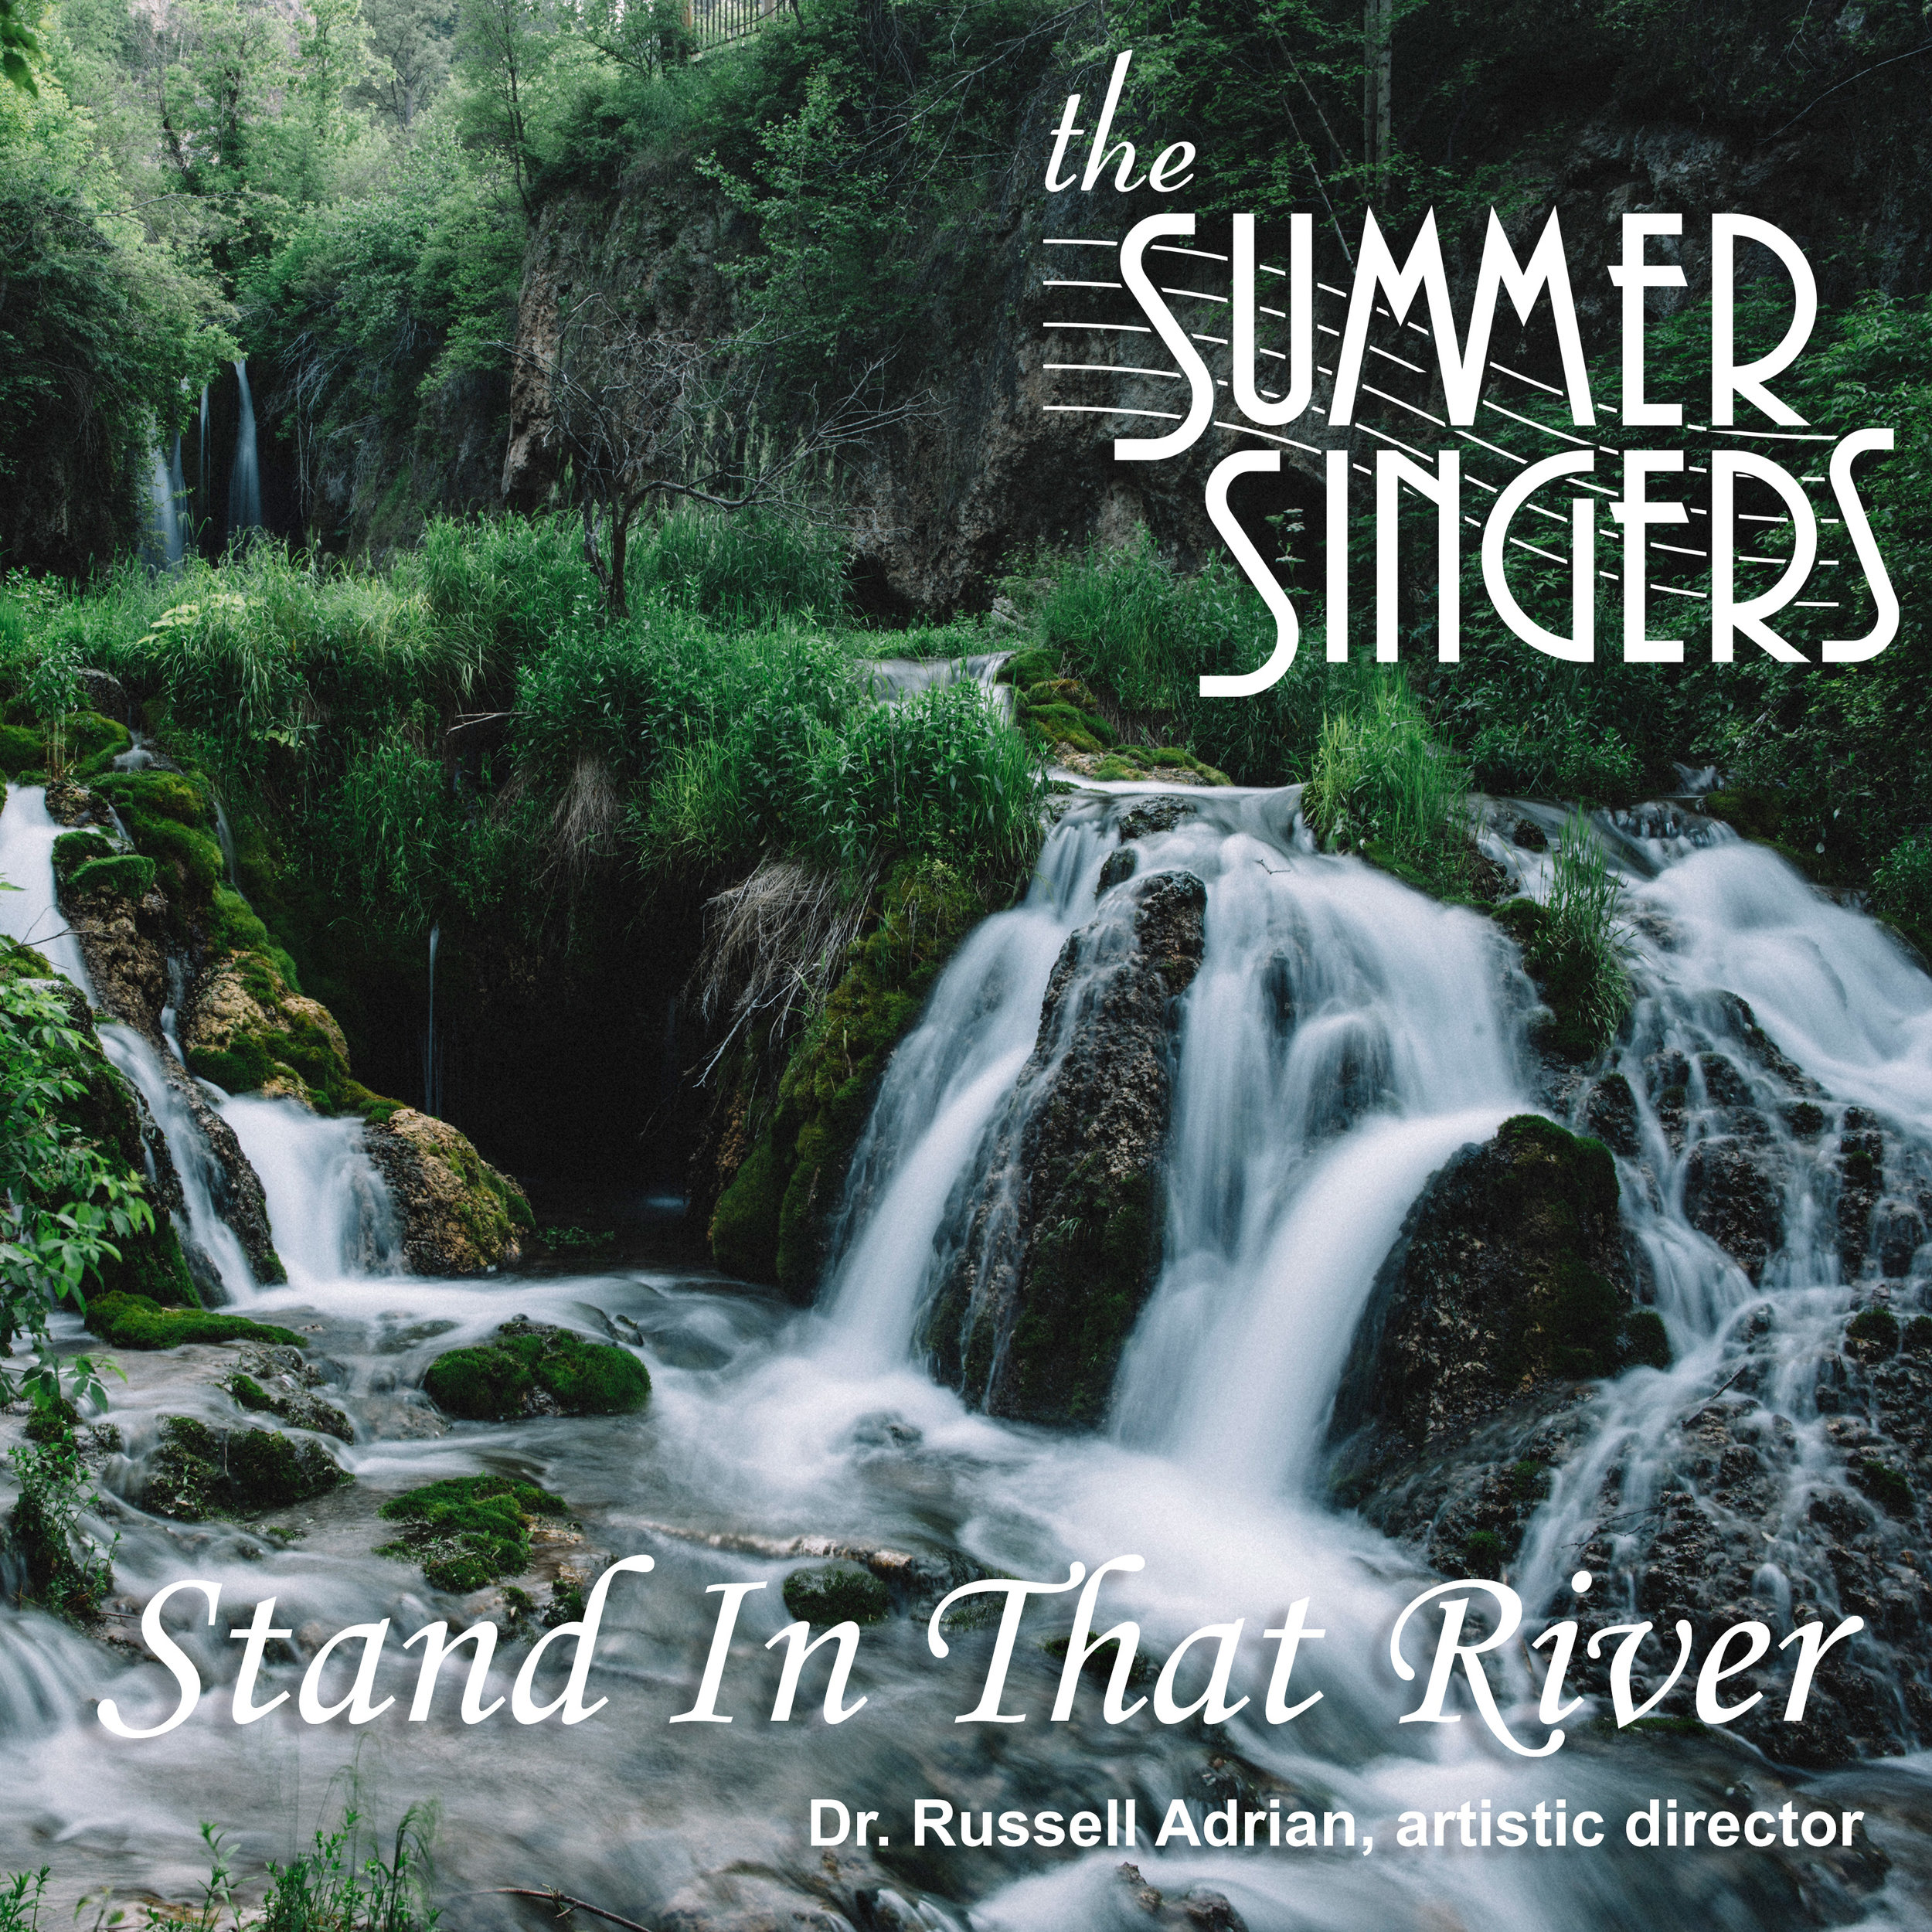 Check out out latest release: Stand In That River. On sale starting July 20.